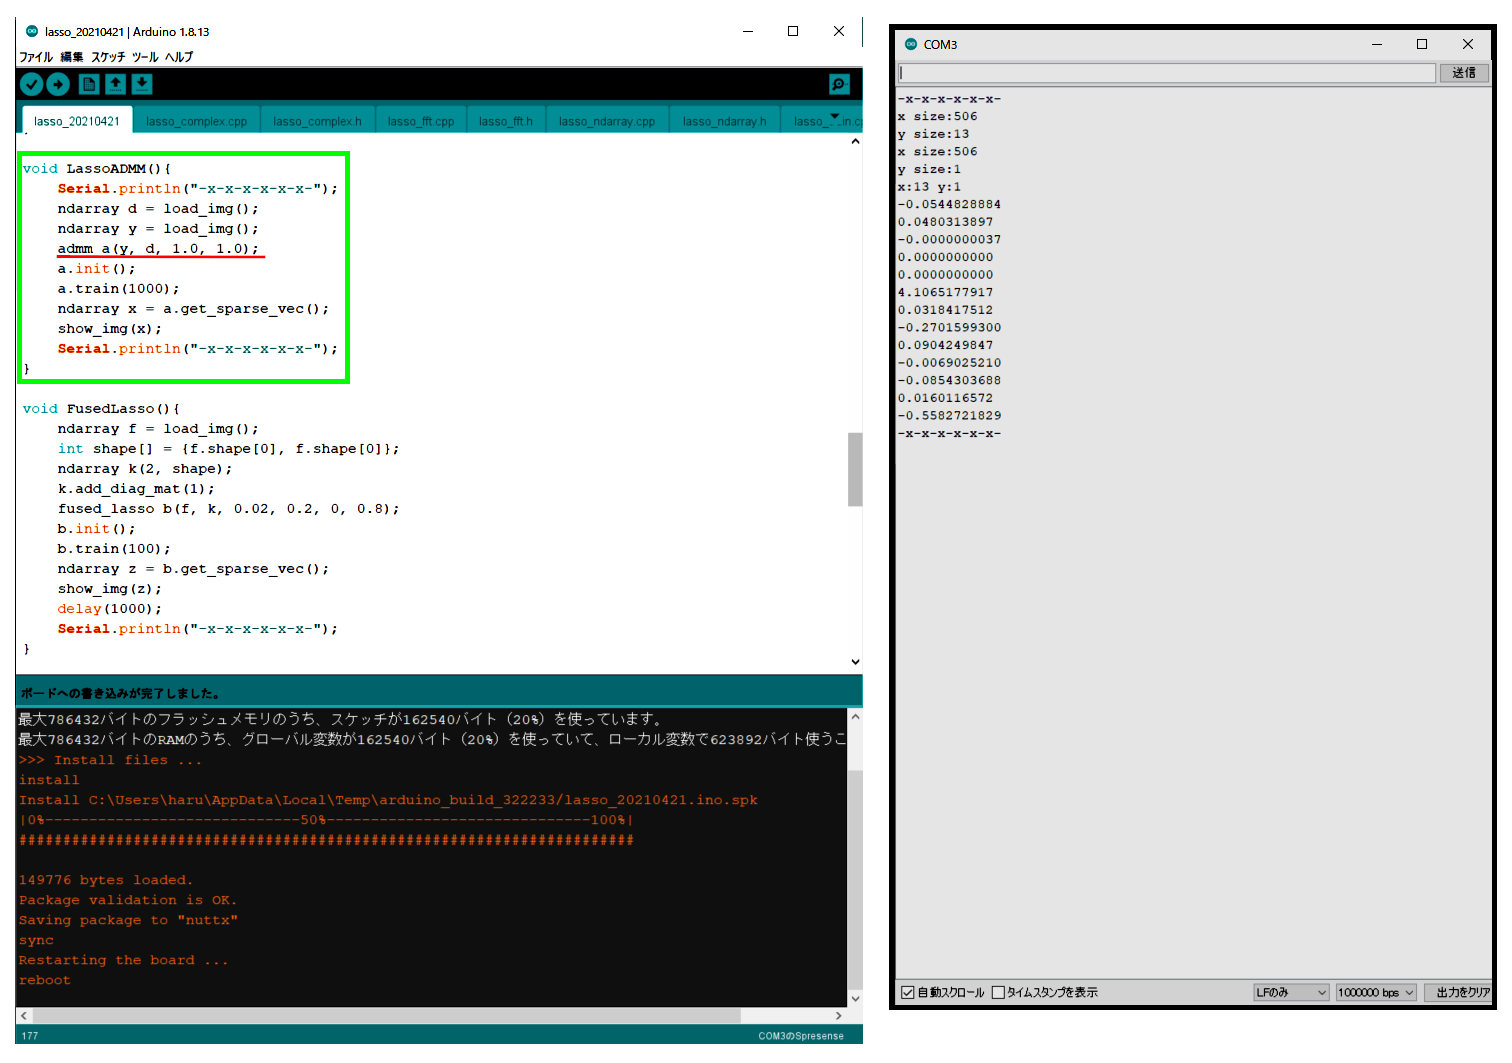 A combination of images showing the source code, resource consumption, and serial terminal for LASSO